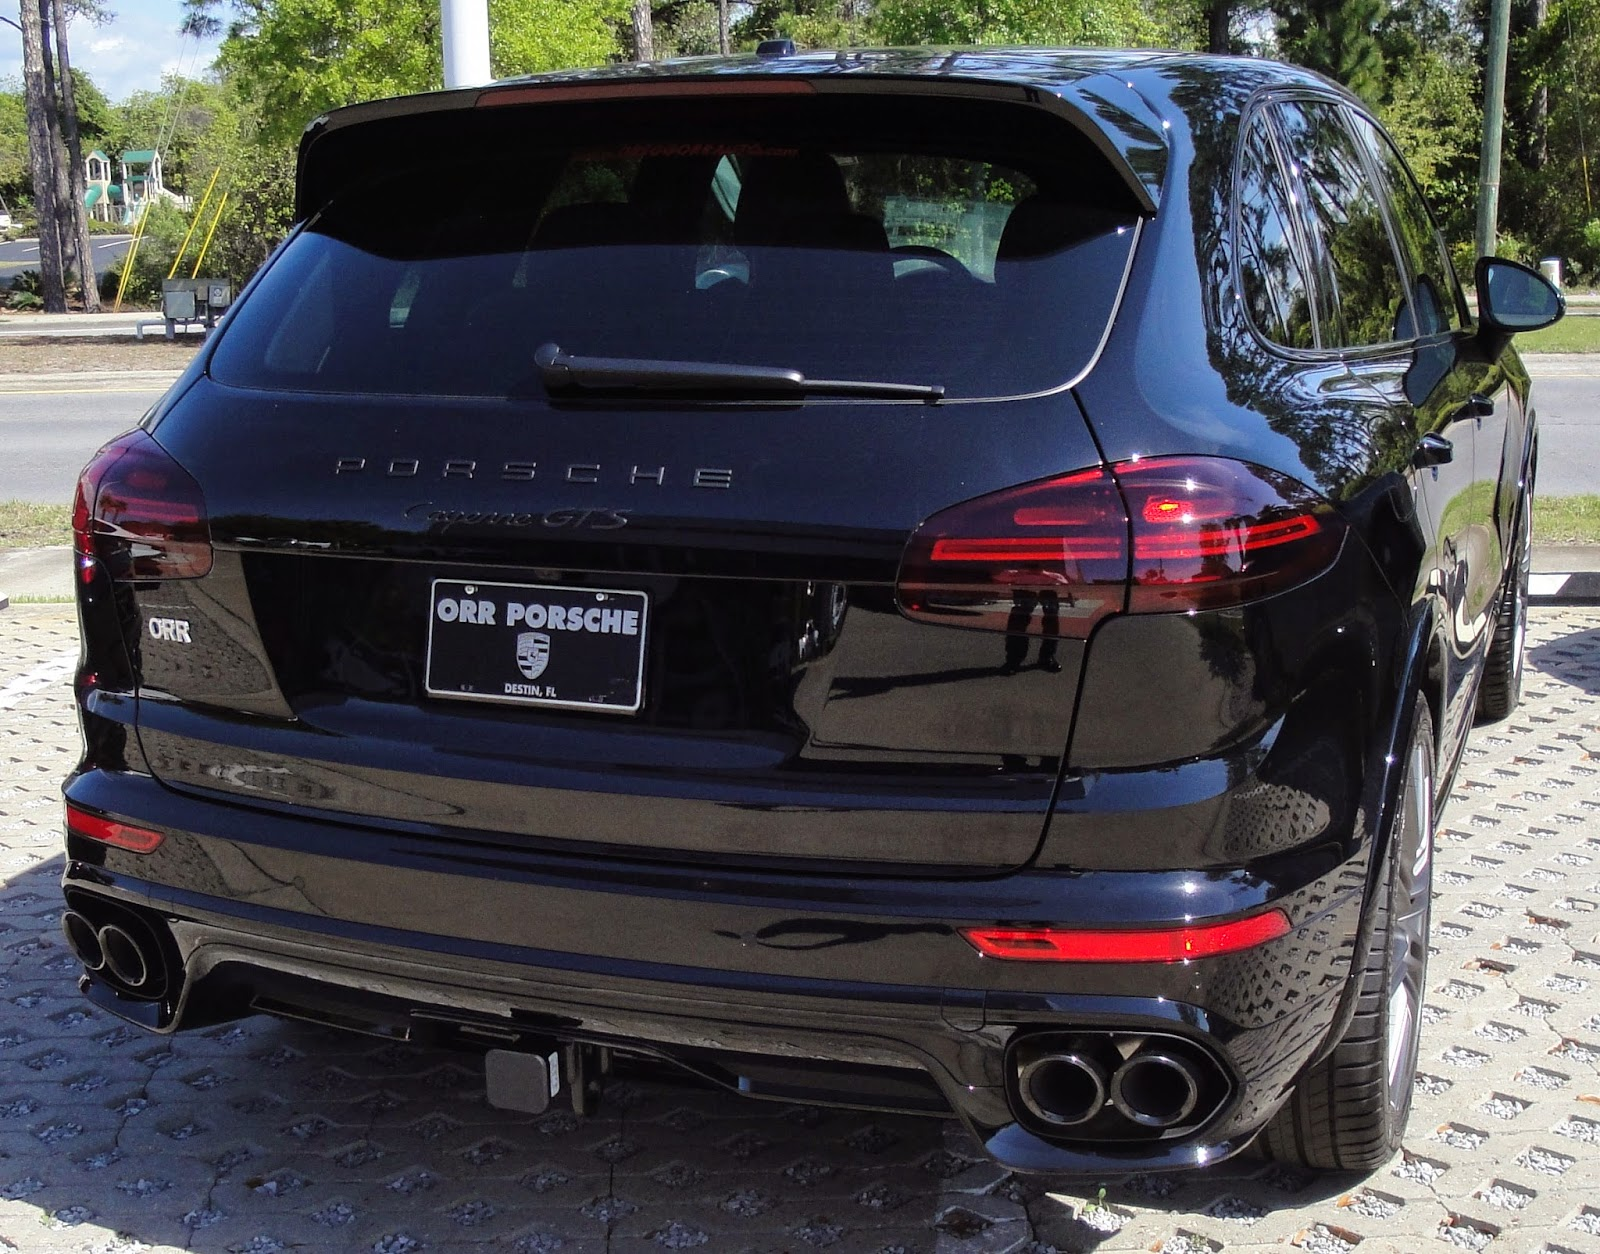 This Cayenne GTS screams rock and roll! The 3.4 L Twin turbo 6 produces 340 Hp and will have you to 60 mph in under 5 seconds.